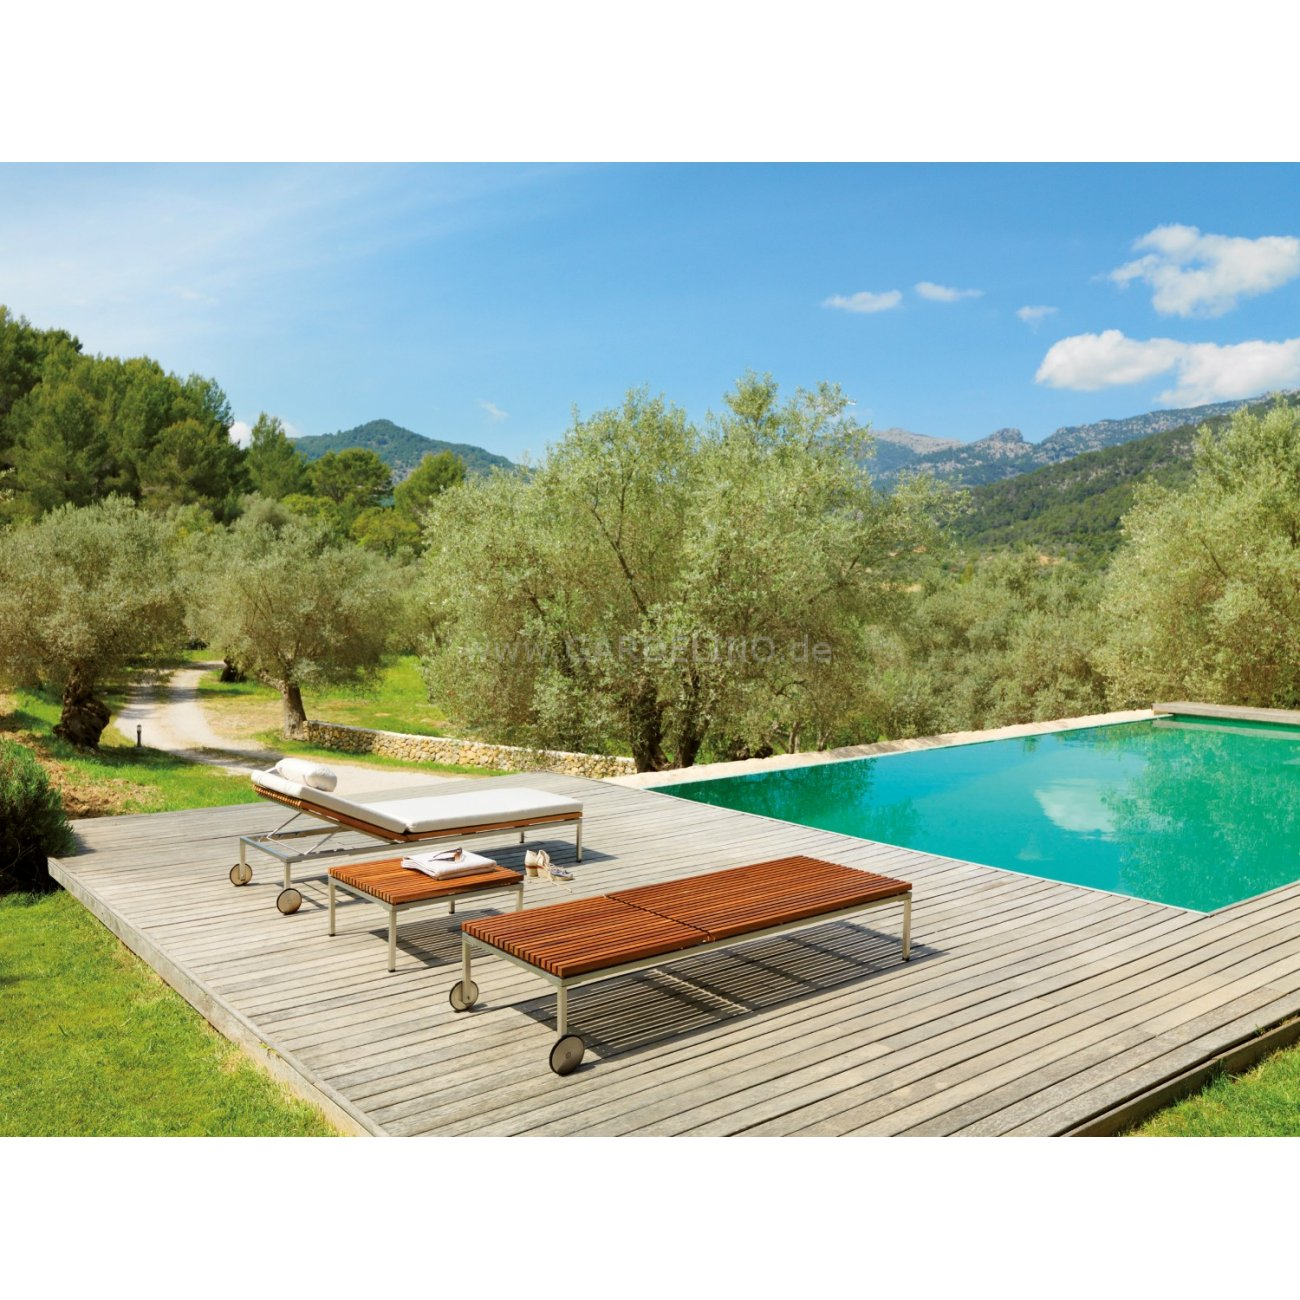 Gartenmobel Holz In Weib : Home Teak Pictures to pin on Pinterest